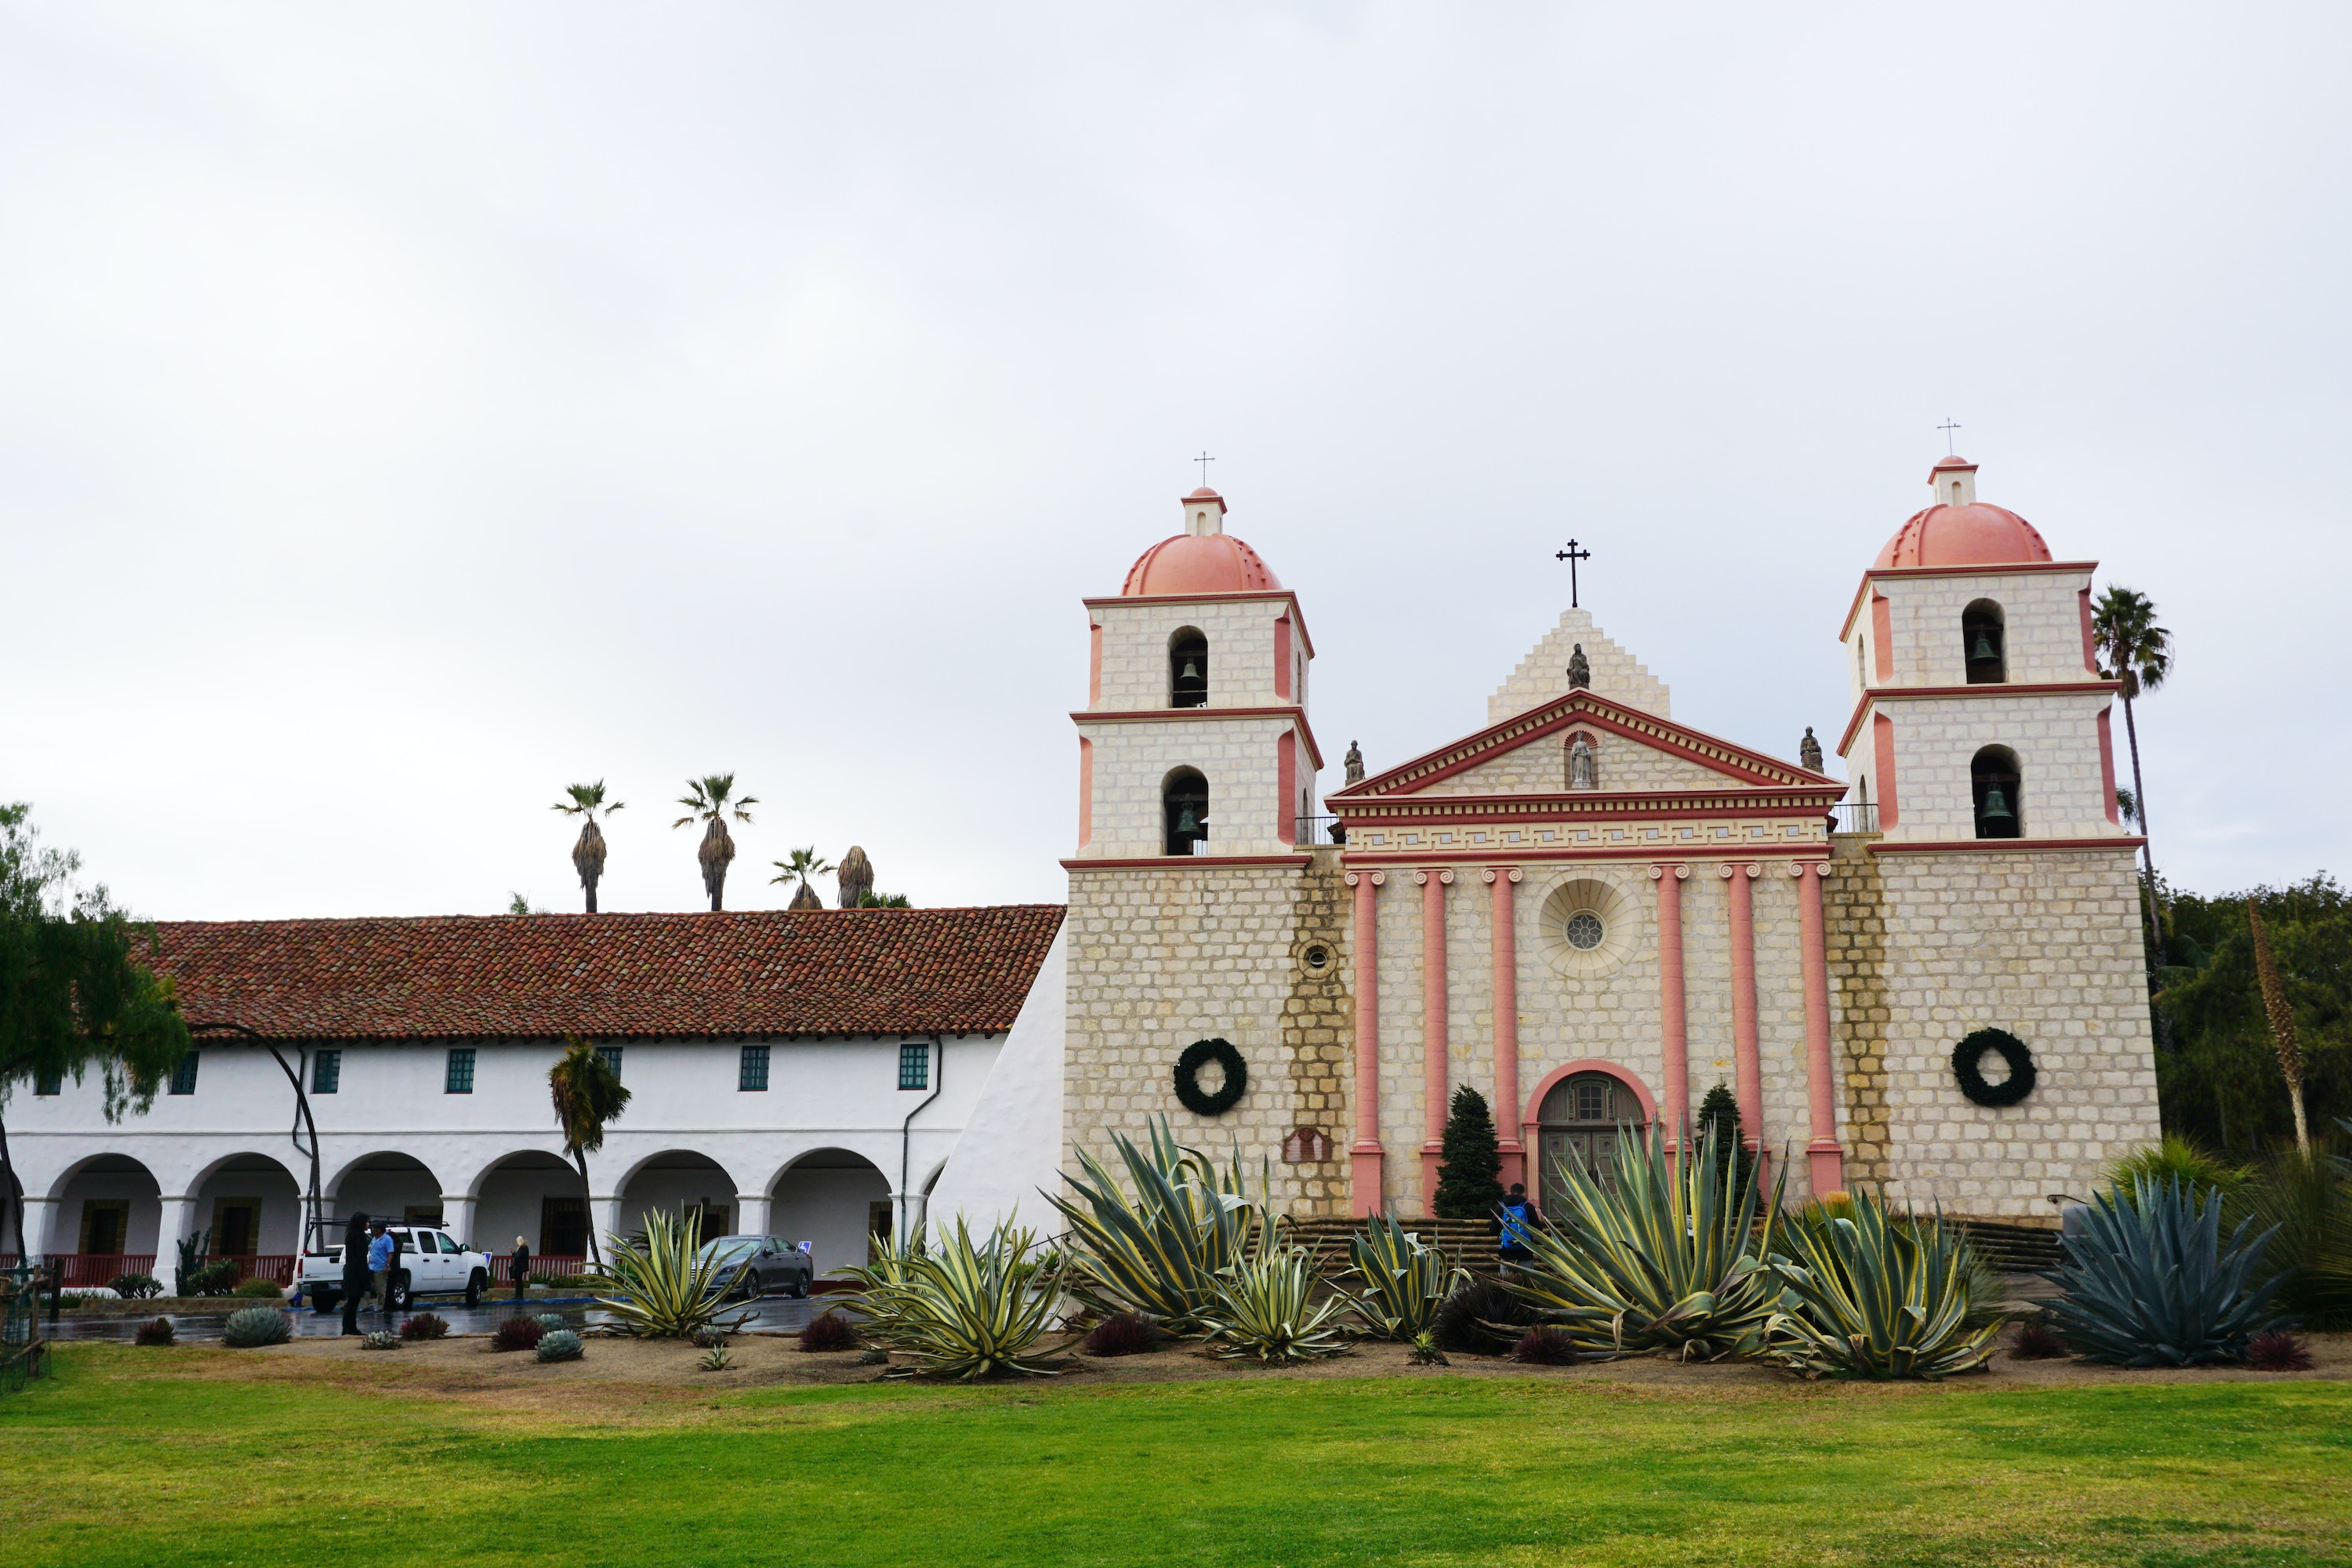 The Santa Barbara Mission is a cultural and historic landmark.